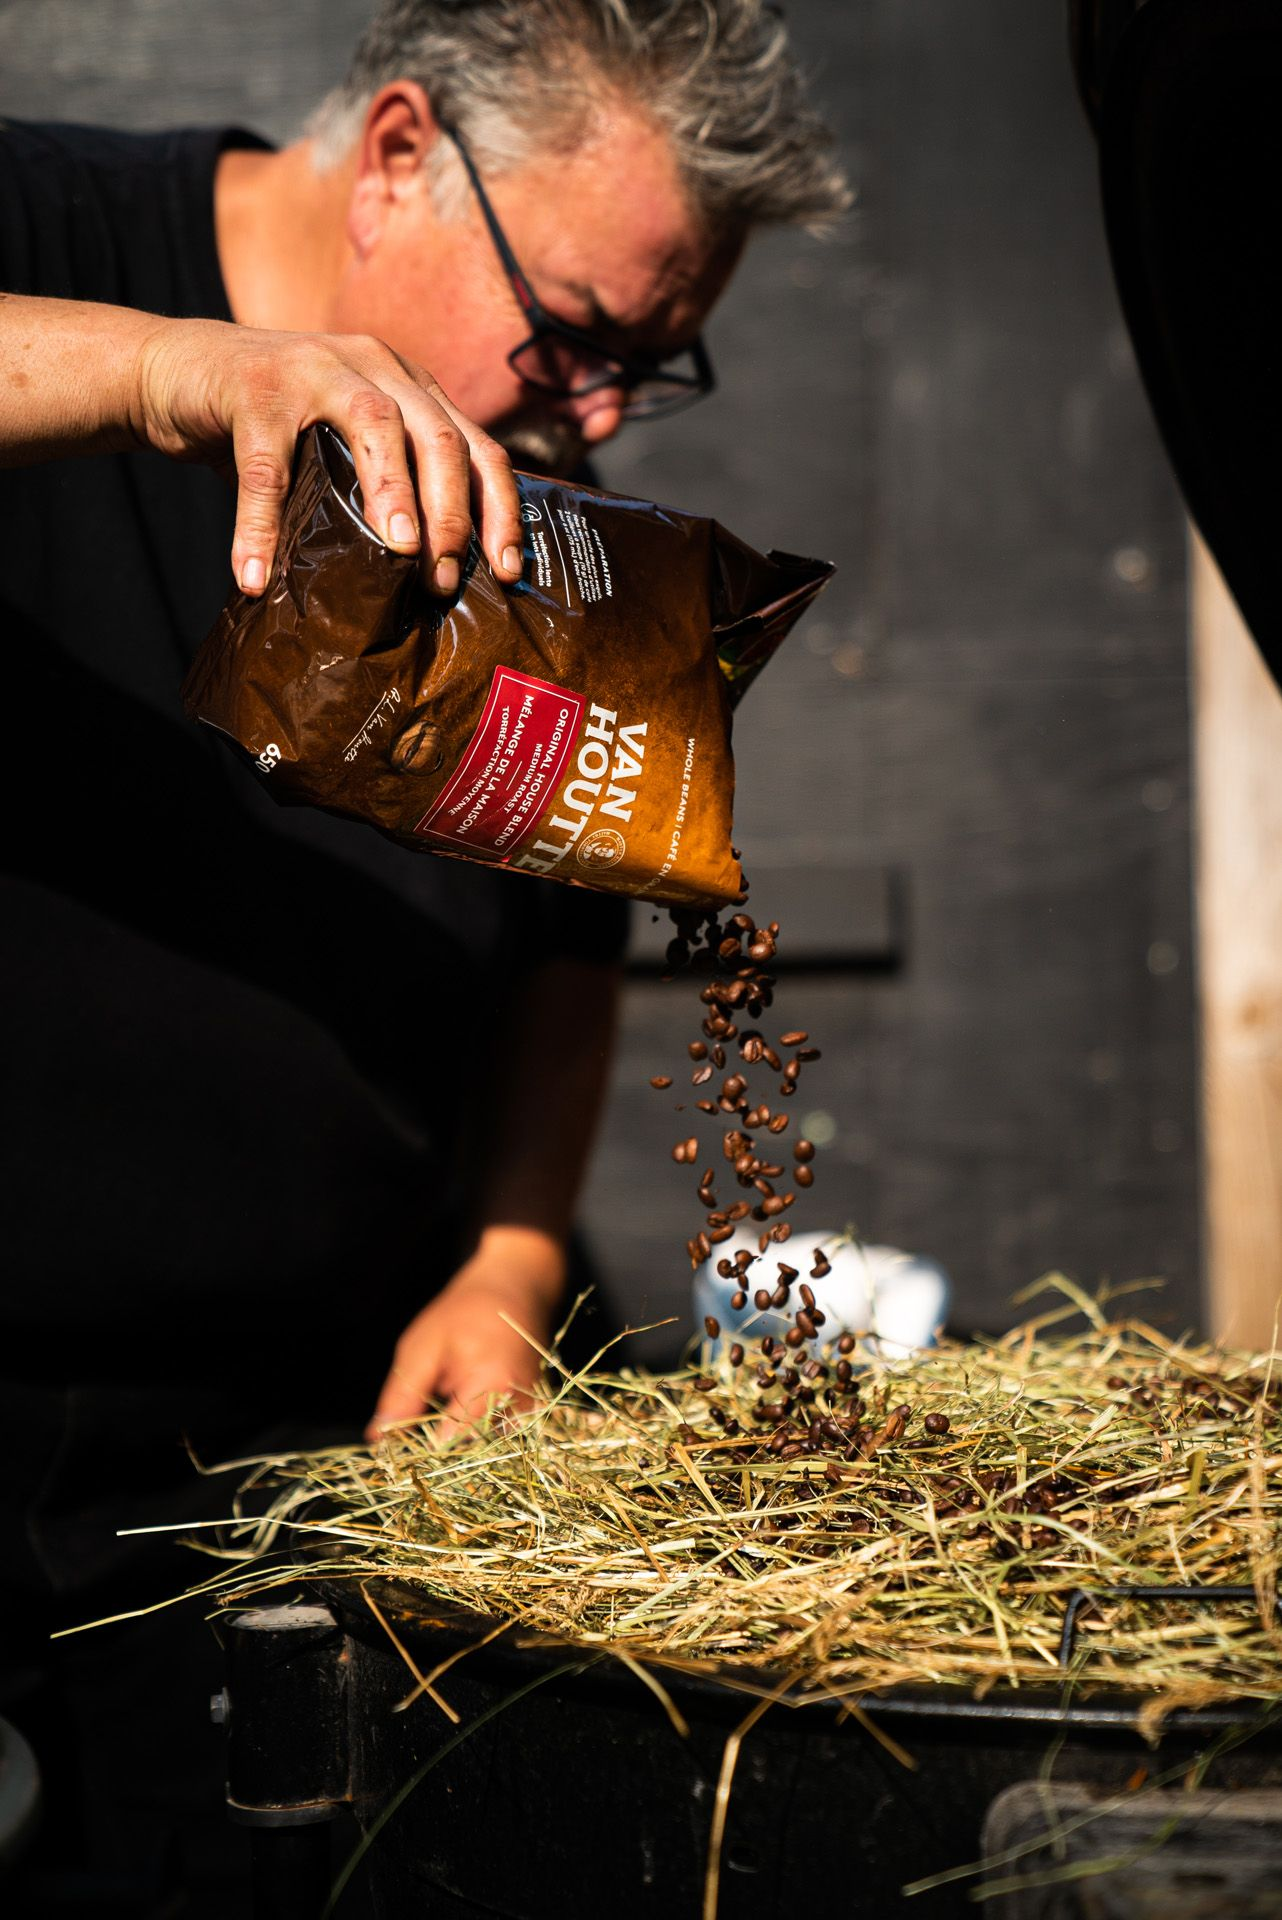 chef Ted Reader pouring roasted coffee beans on cooking hay by Bruno Florin for Van Houtte 100th anniversary